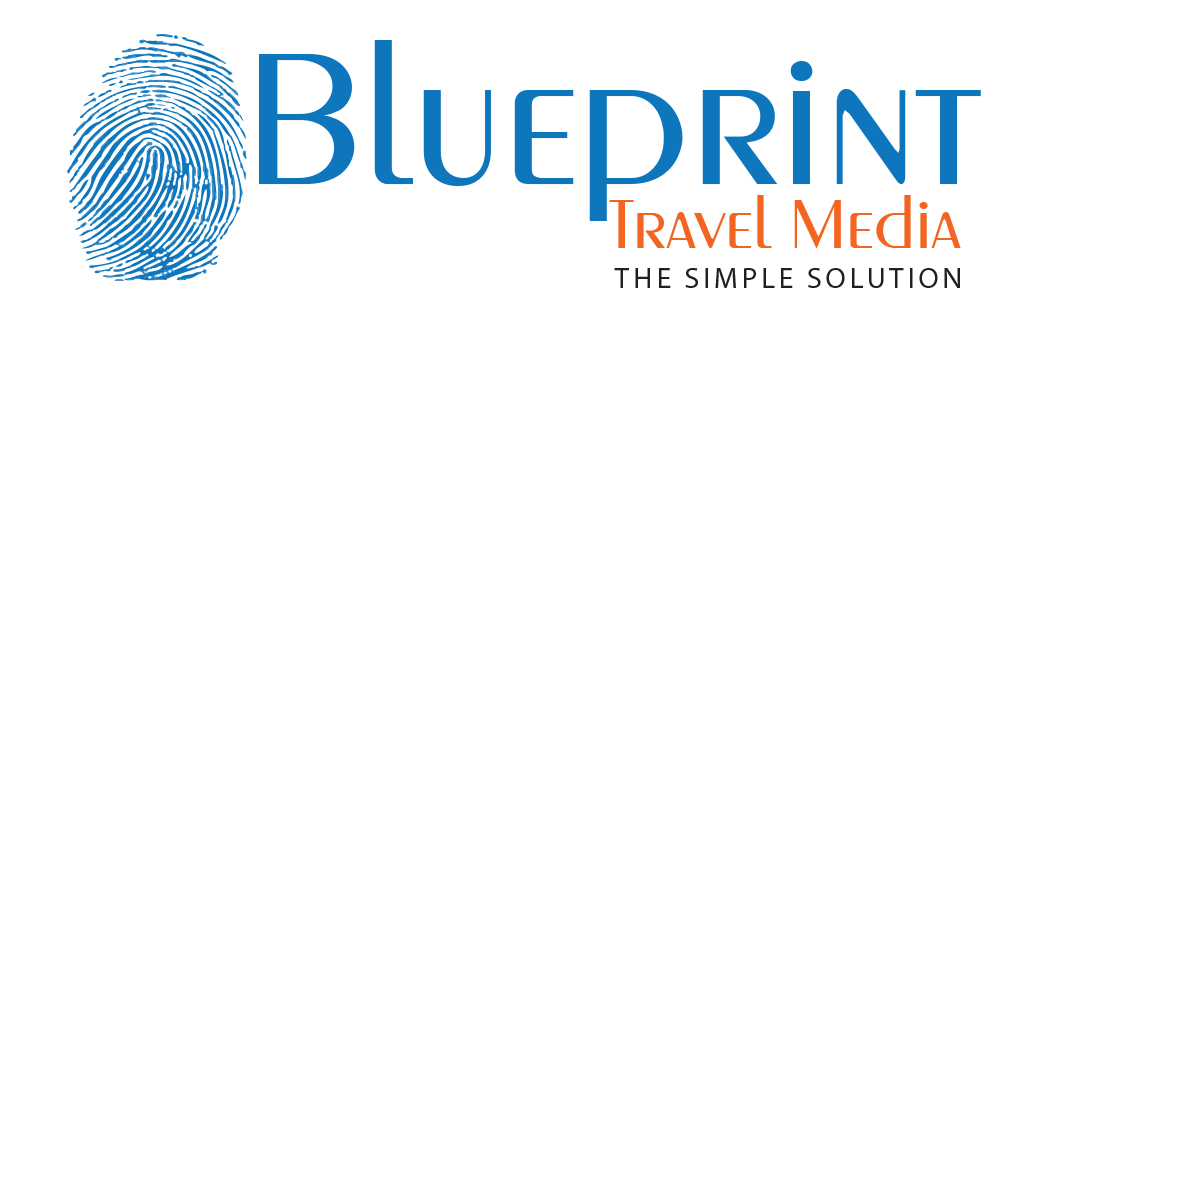 Playful professional logo design for blueprint travel media by logo design by graphic wizard for revamp of company logo for a tourism design agency malvernweather Gallery